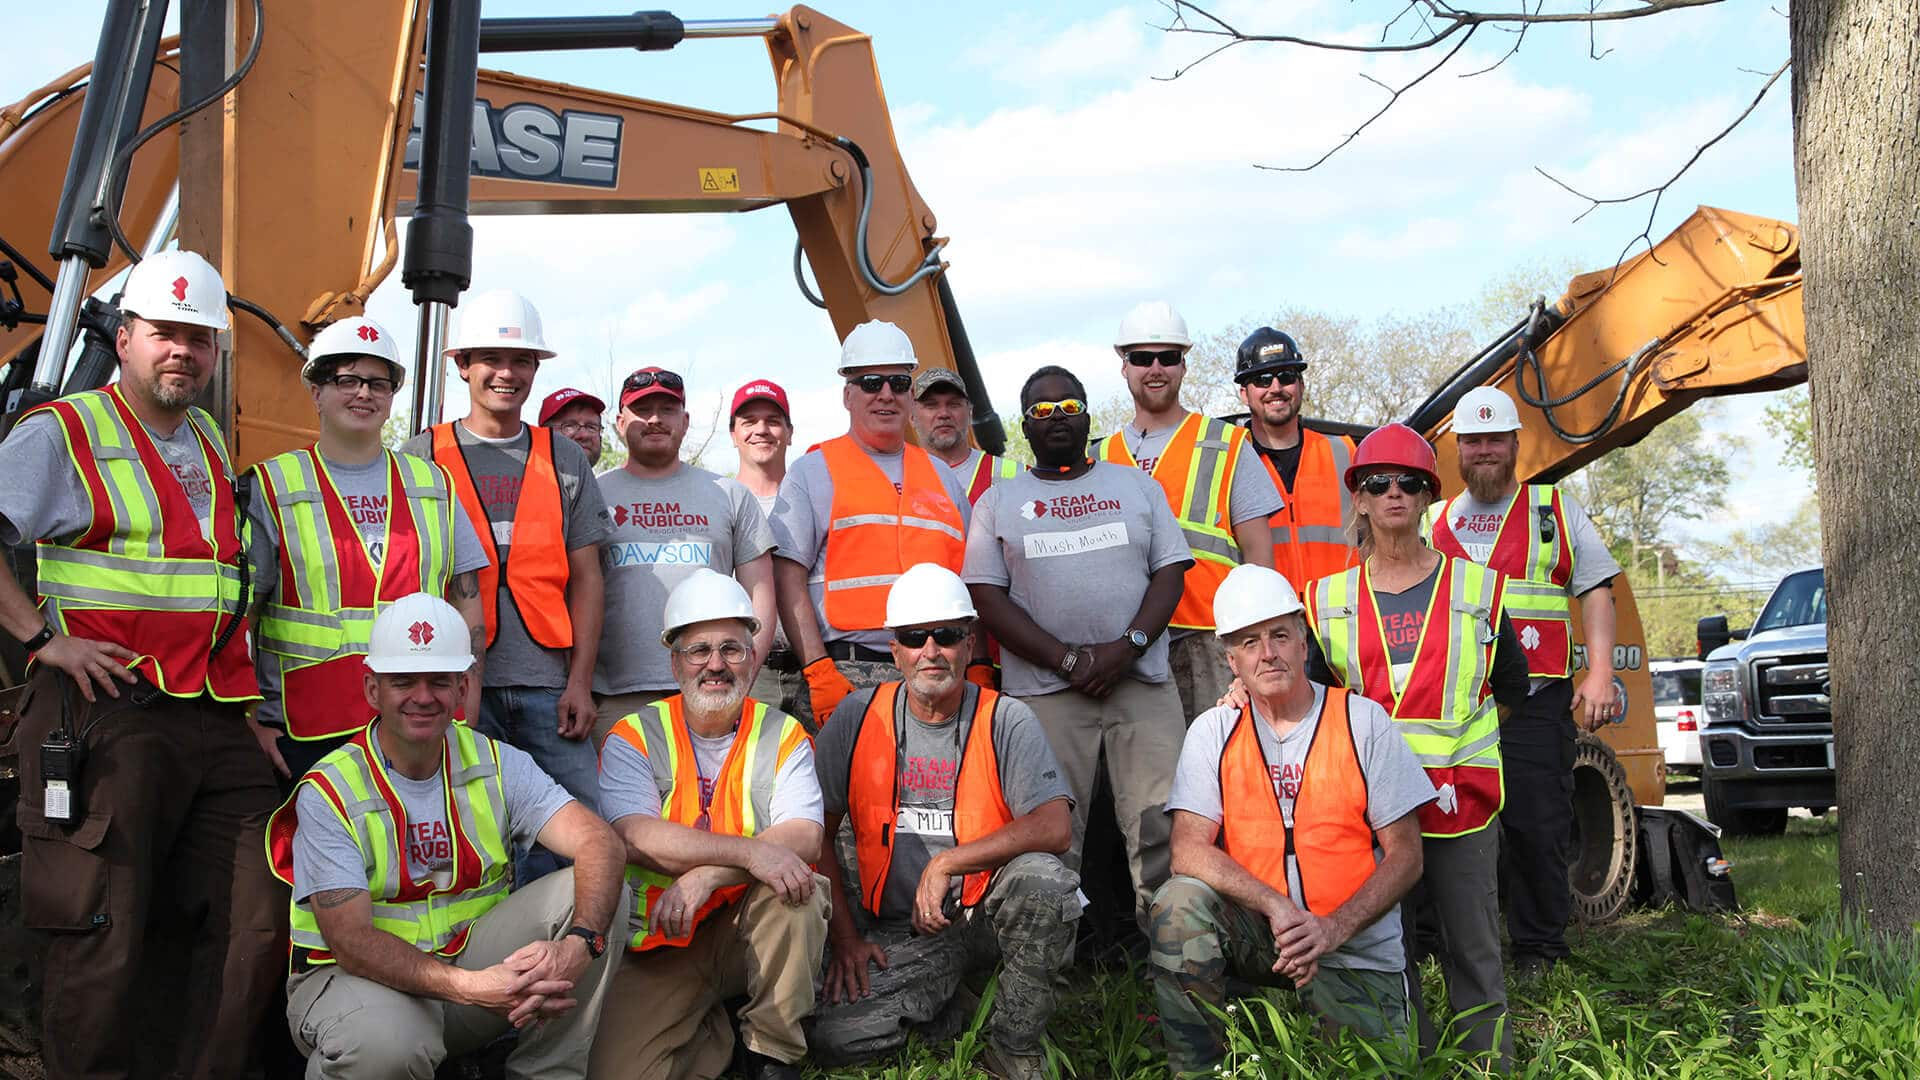 Case Supports Team Rubicon Mobex Motor City Case News